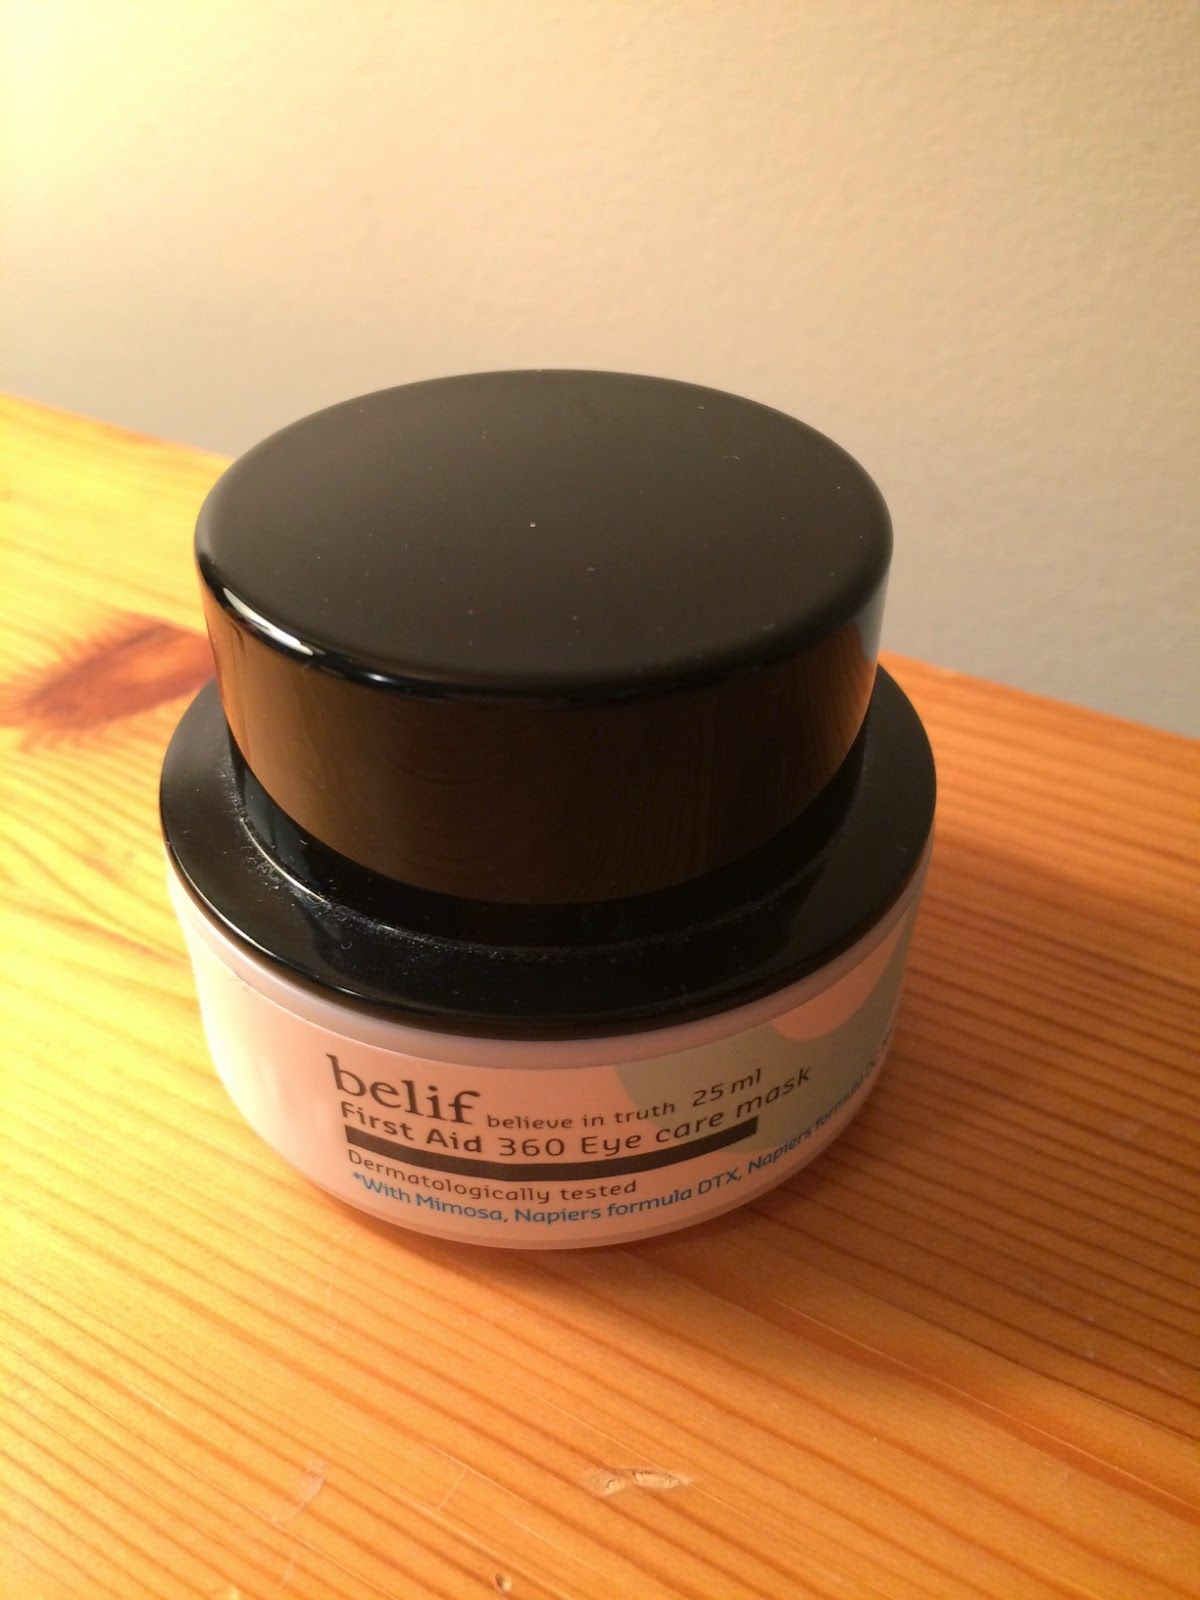 Mad About My Skin: Review: Belif First Aid 360 Eye Care Mask